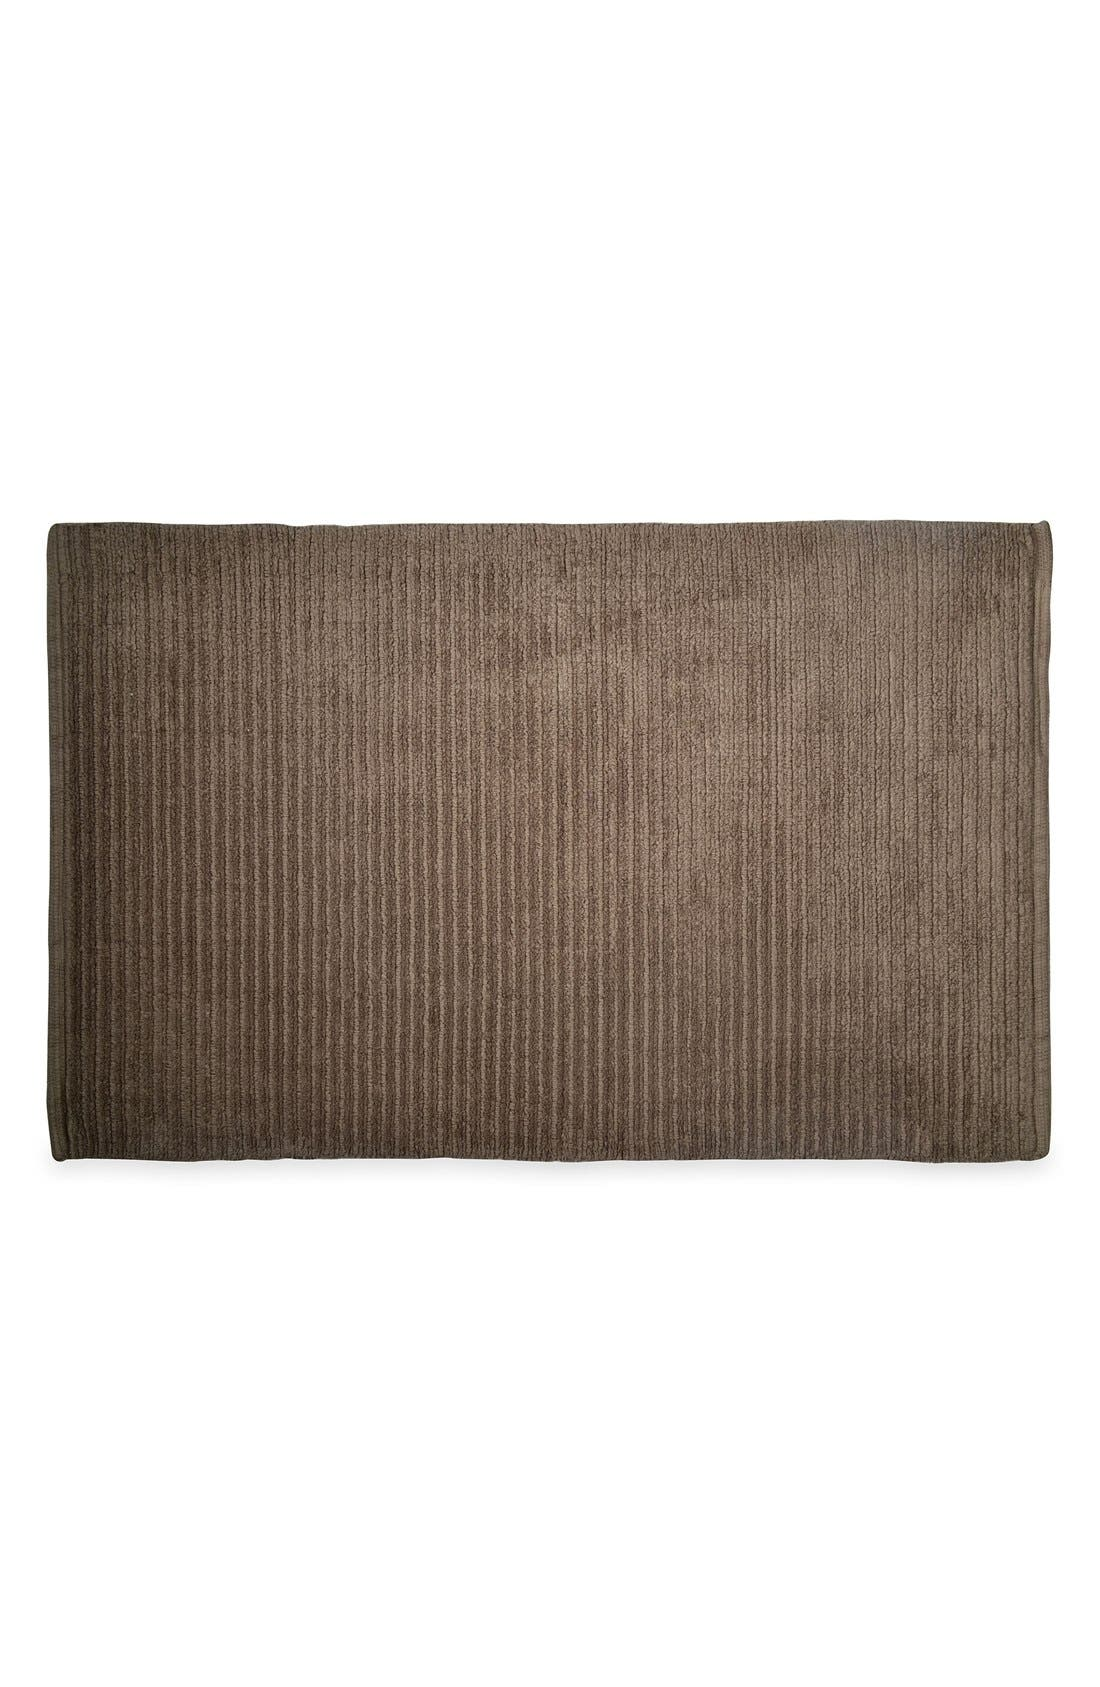 DKNY, Mercer Bath Rug, Main thumbnail 1, color, GREYSTONE